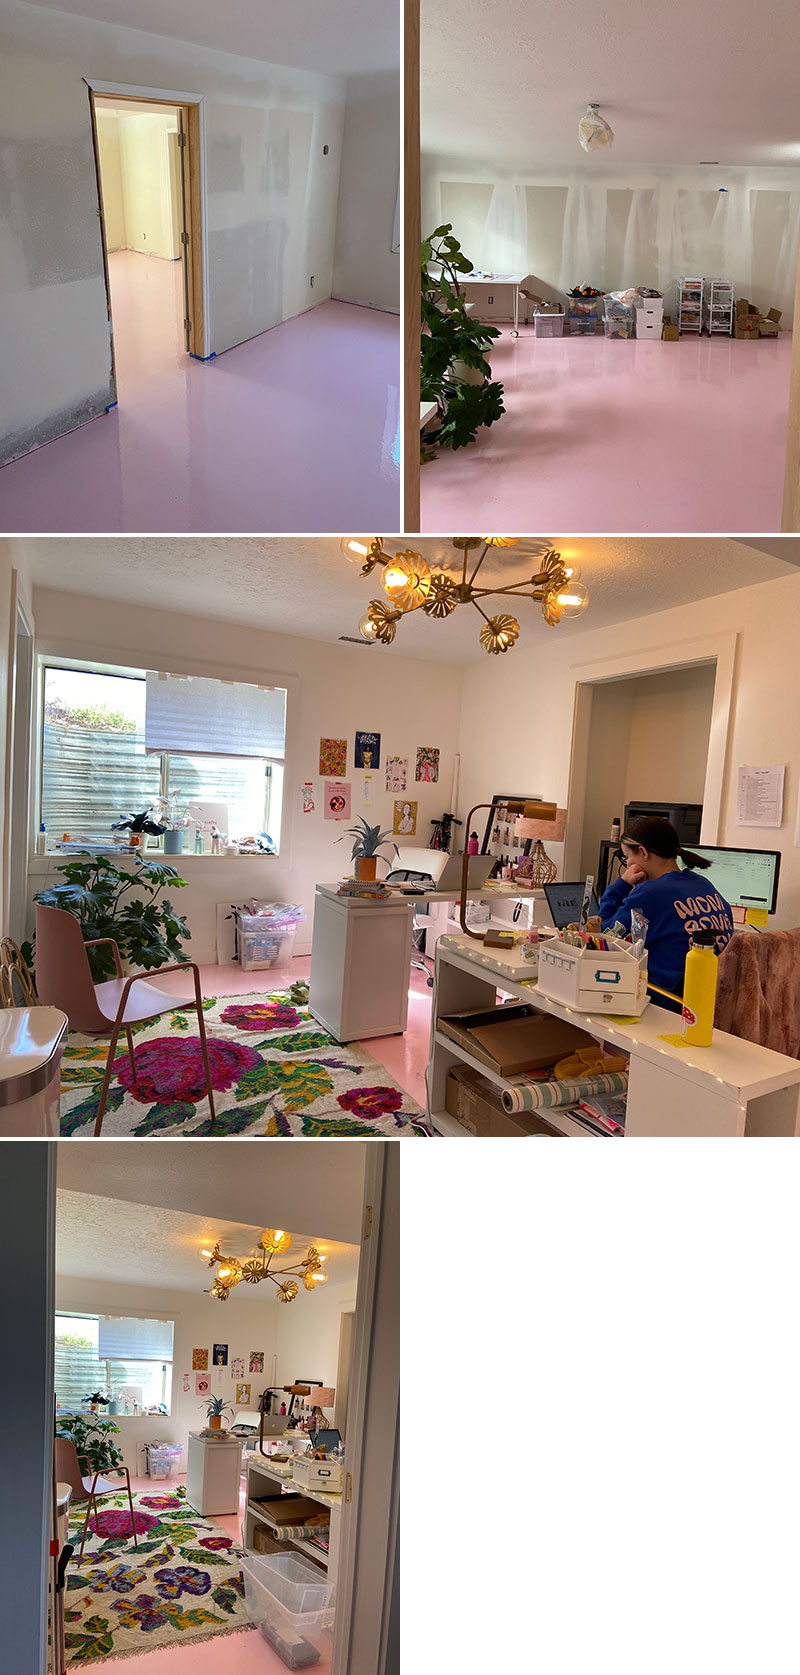 Shots of a basement space with pink floors and bare unfinished walls, then shots of the space with a plant, then with a rug, some simple furniture, and a brass light fixture. Some of the team is working in the background of the images.